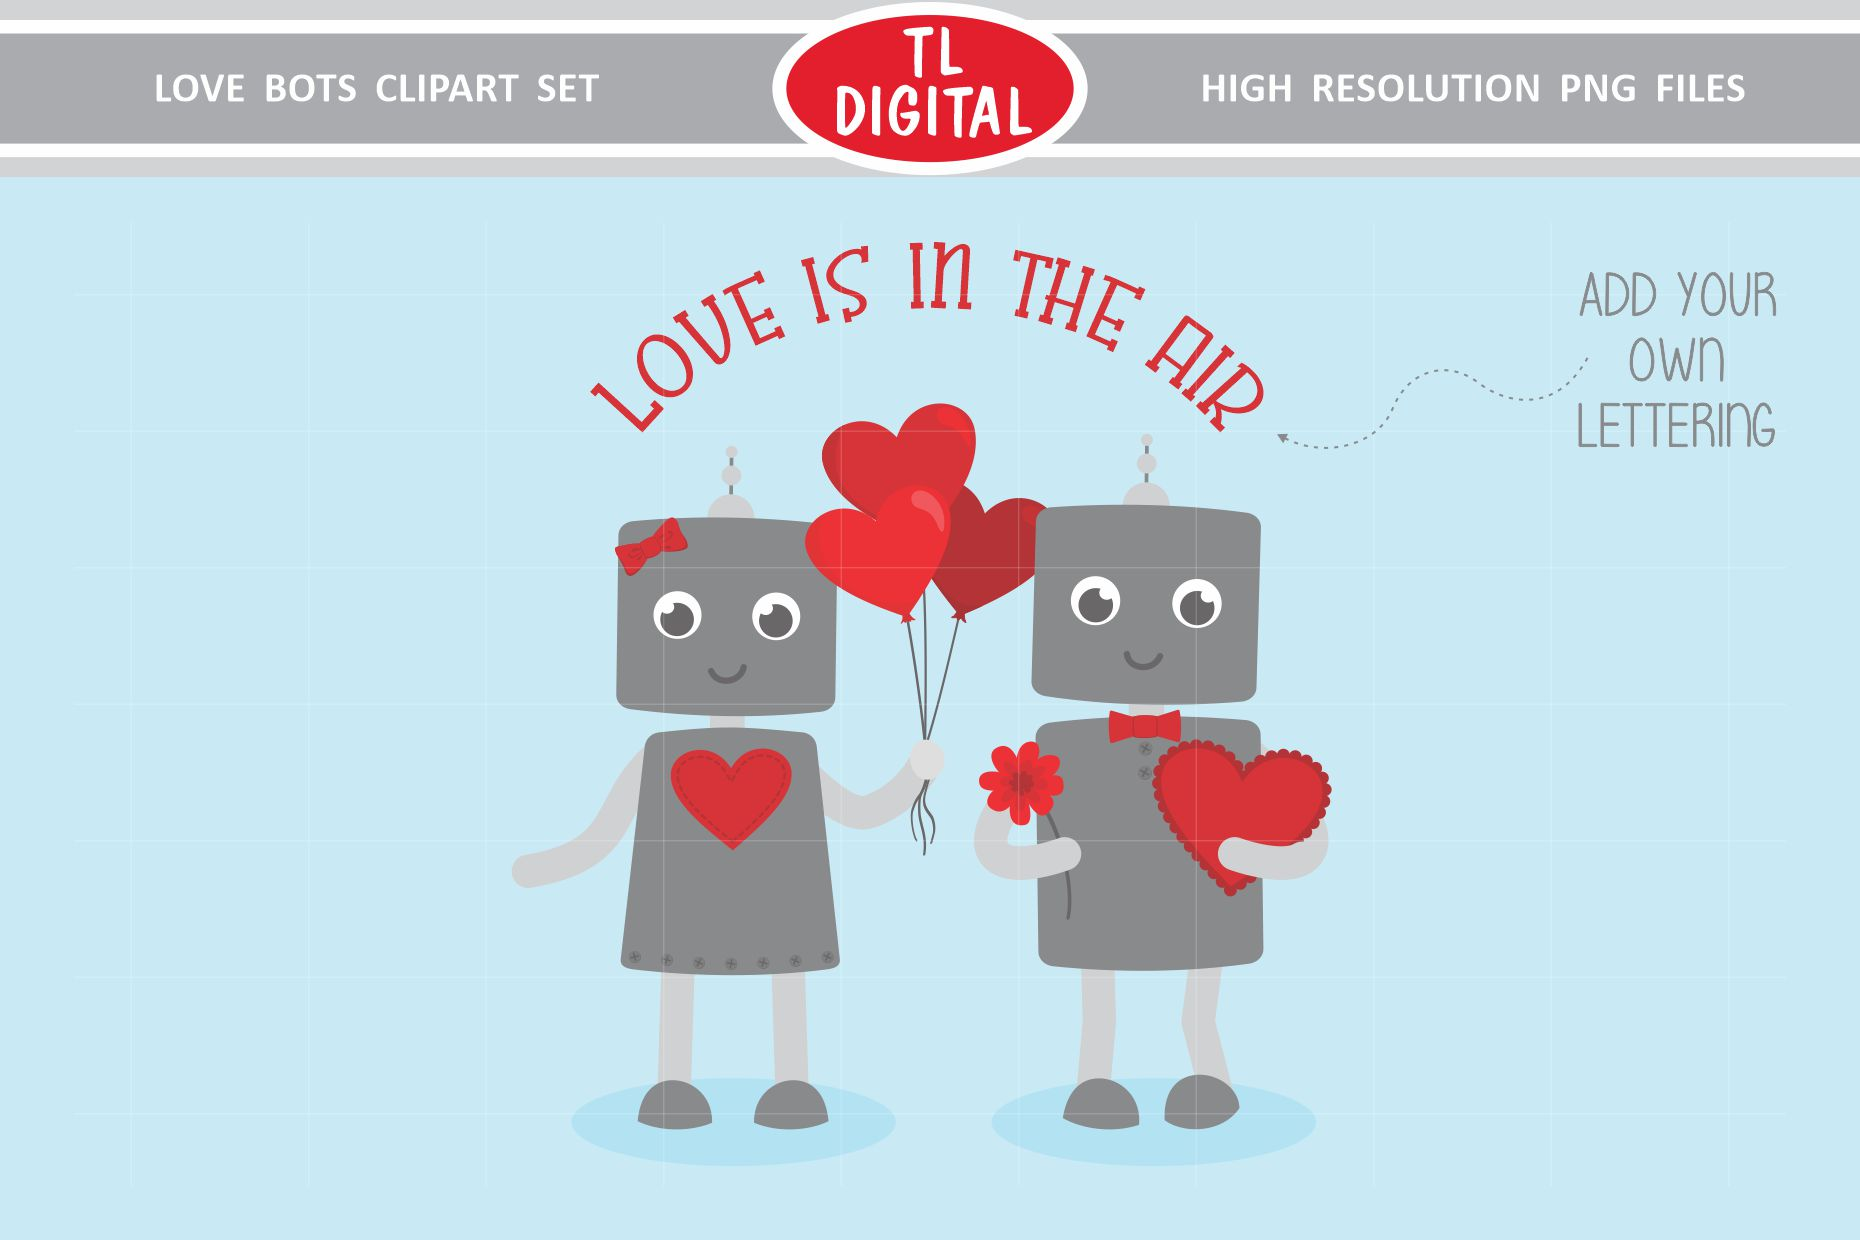 Love Robots Clipart Set - 13 Valentines PNG Graphics example image 5